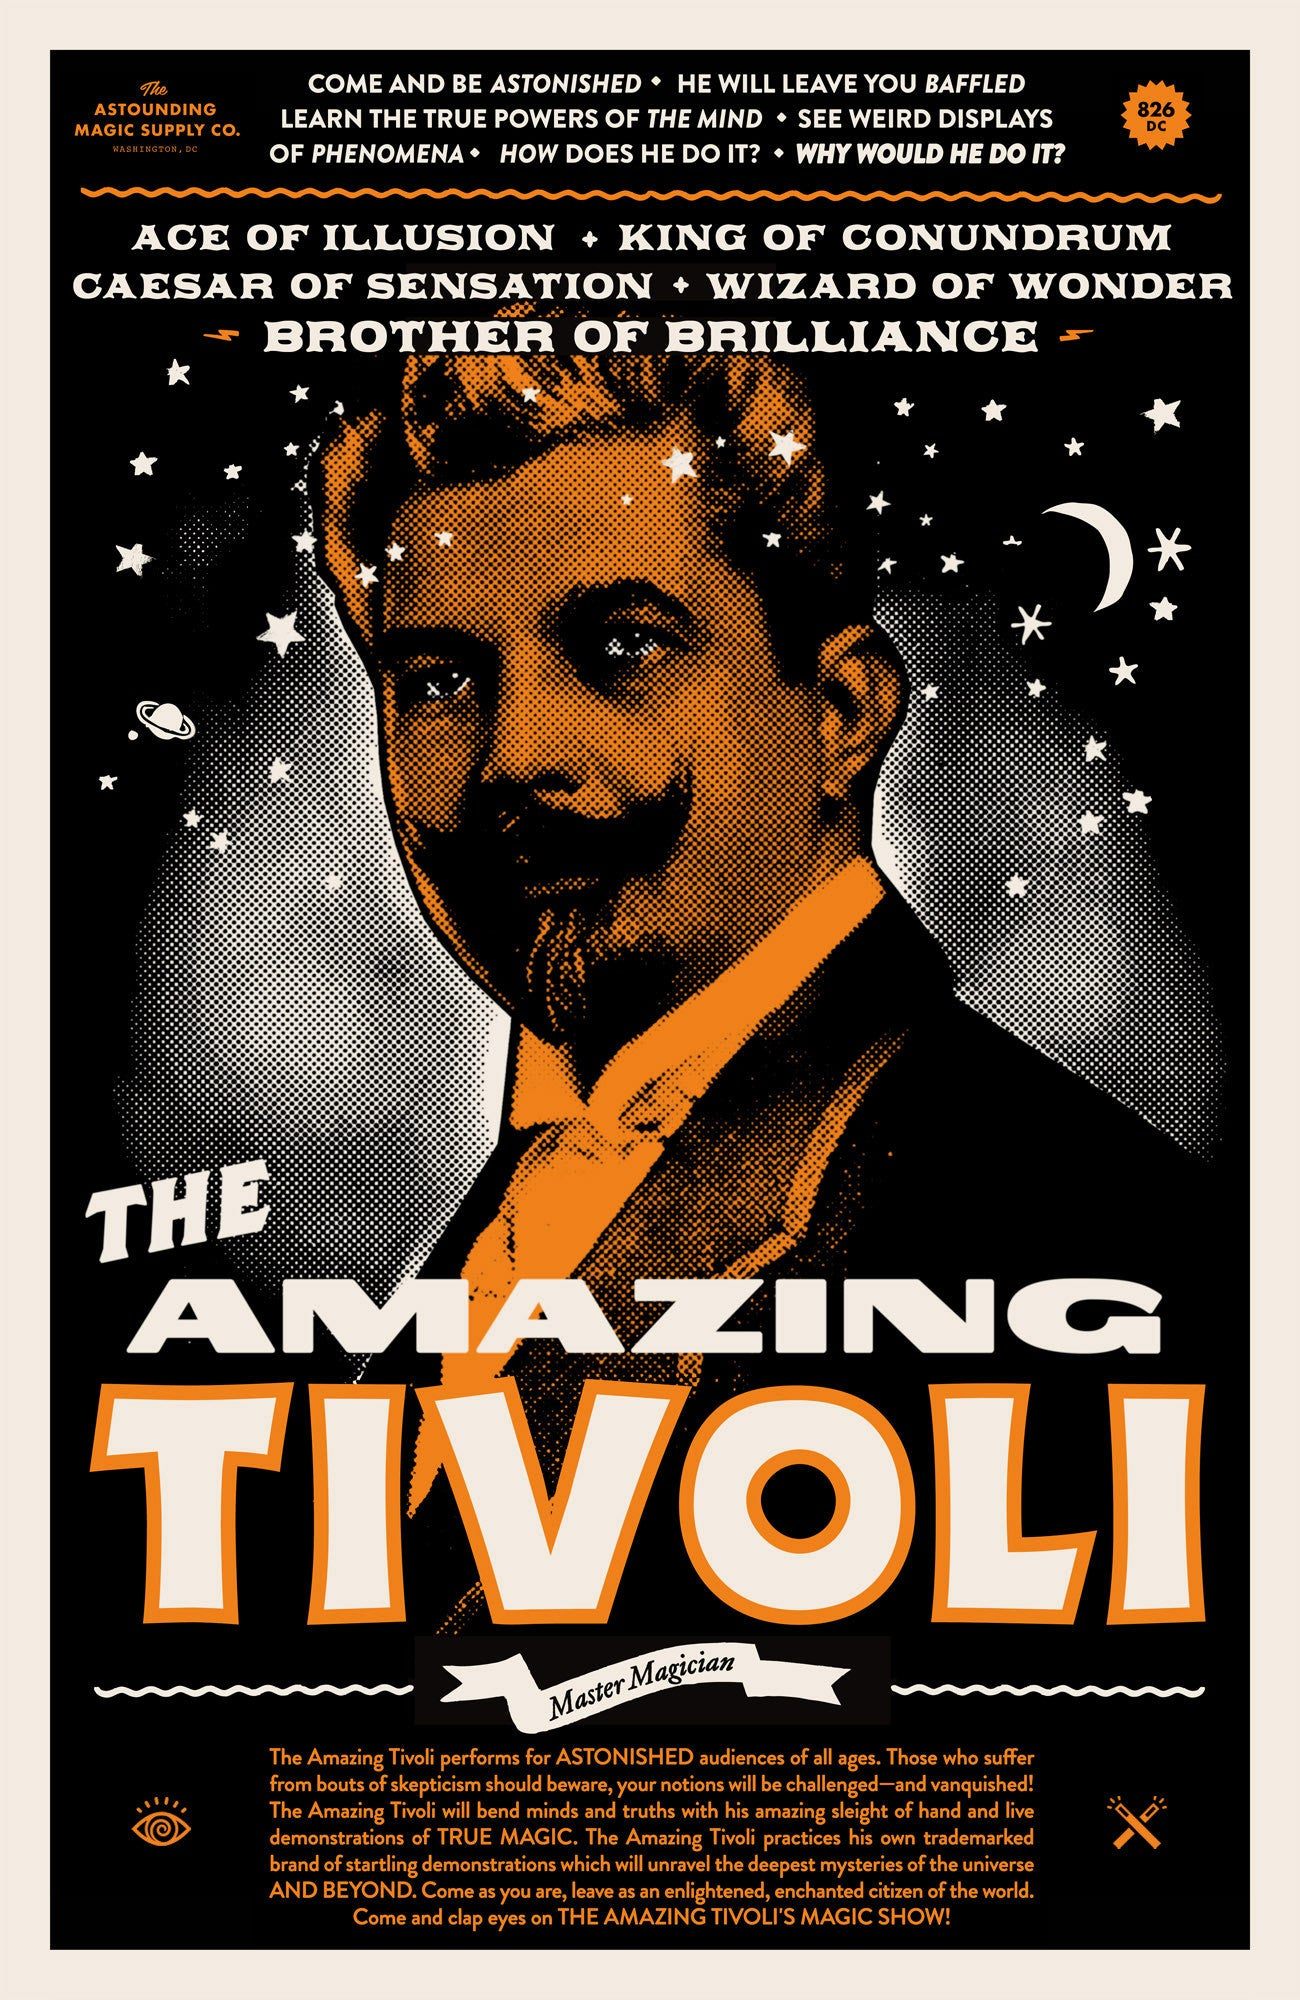 "9"" x 16"" poster with black background and white stars and planets patterned throughout. Photo of a 1900s-styled magician in orange and black. Promotional language at the top middle. Subheaders beneath with headlines.  ""The Amazing Tivoli"" in large font towards the bottom. Additional promotional text in small font below."